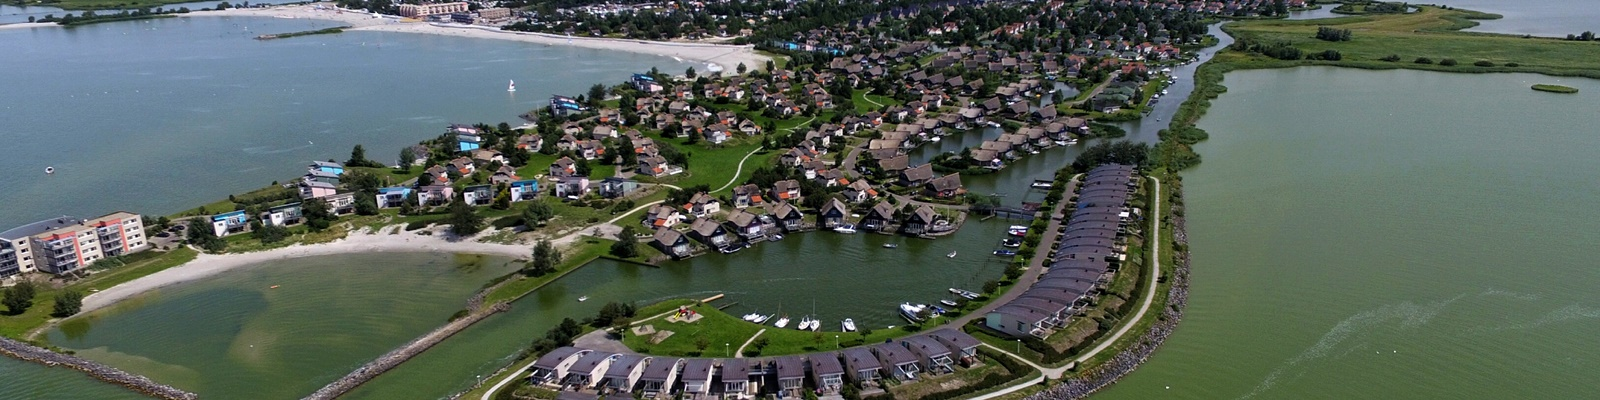 viswater Beach Resort Makkum